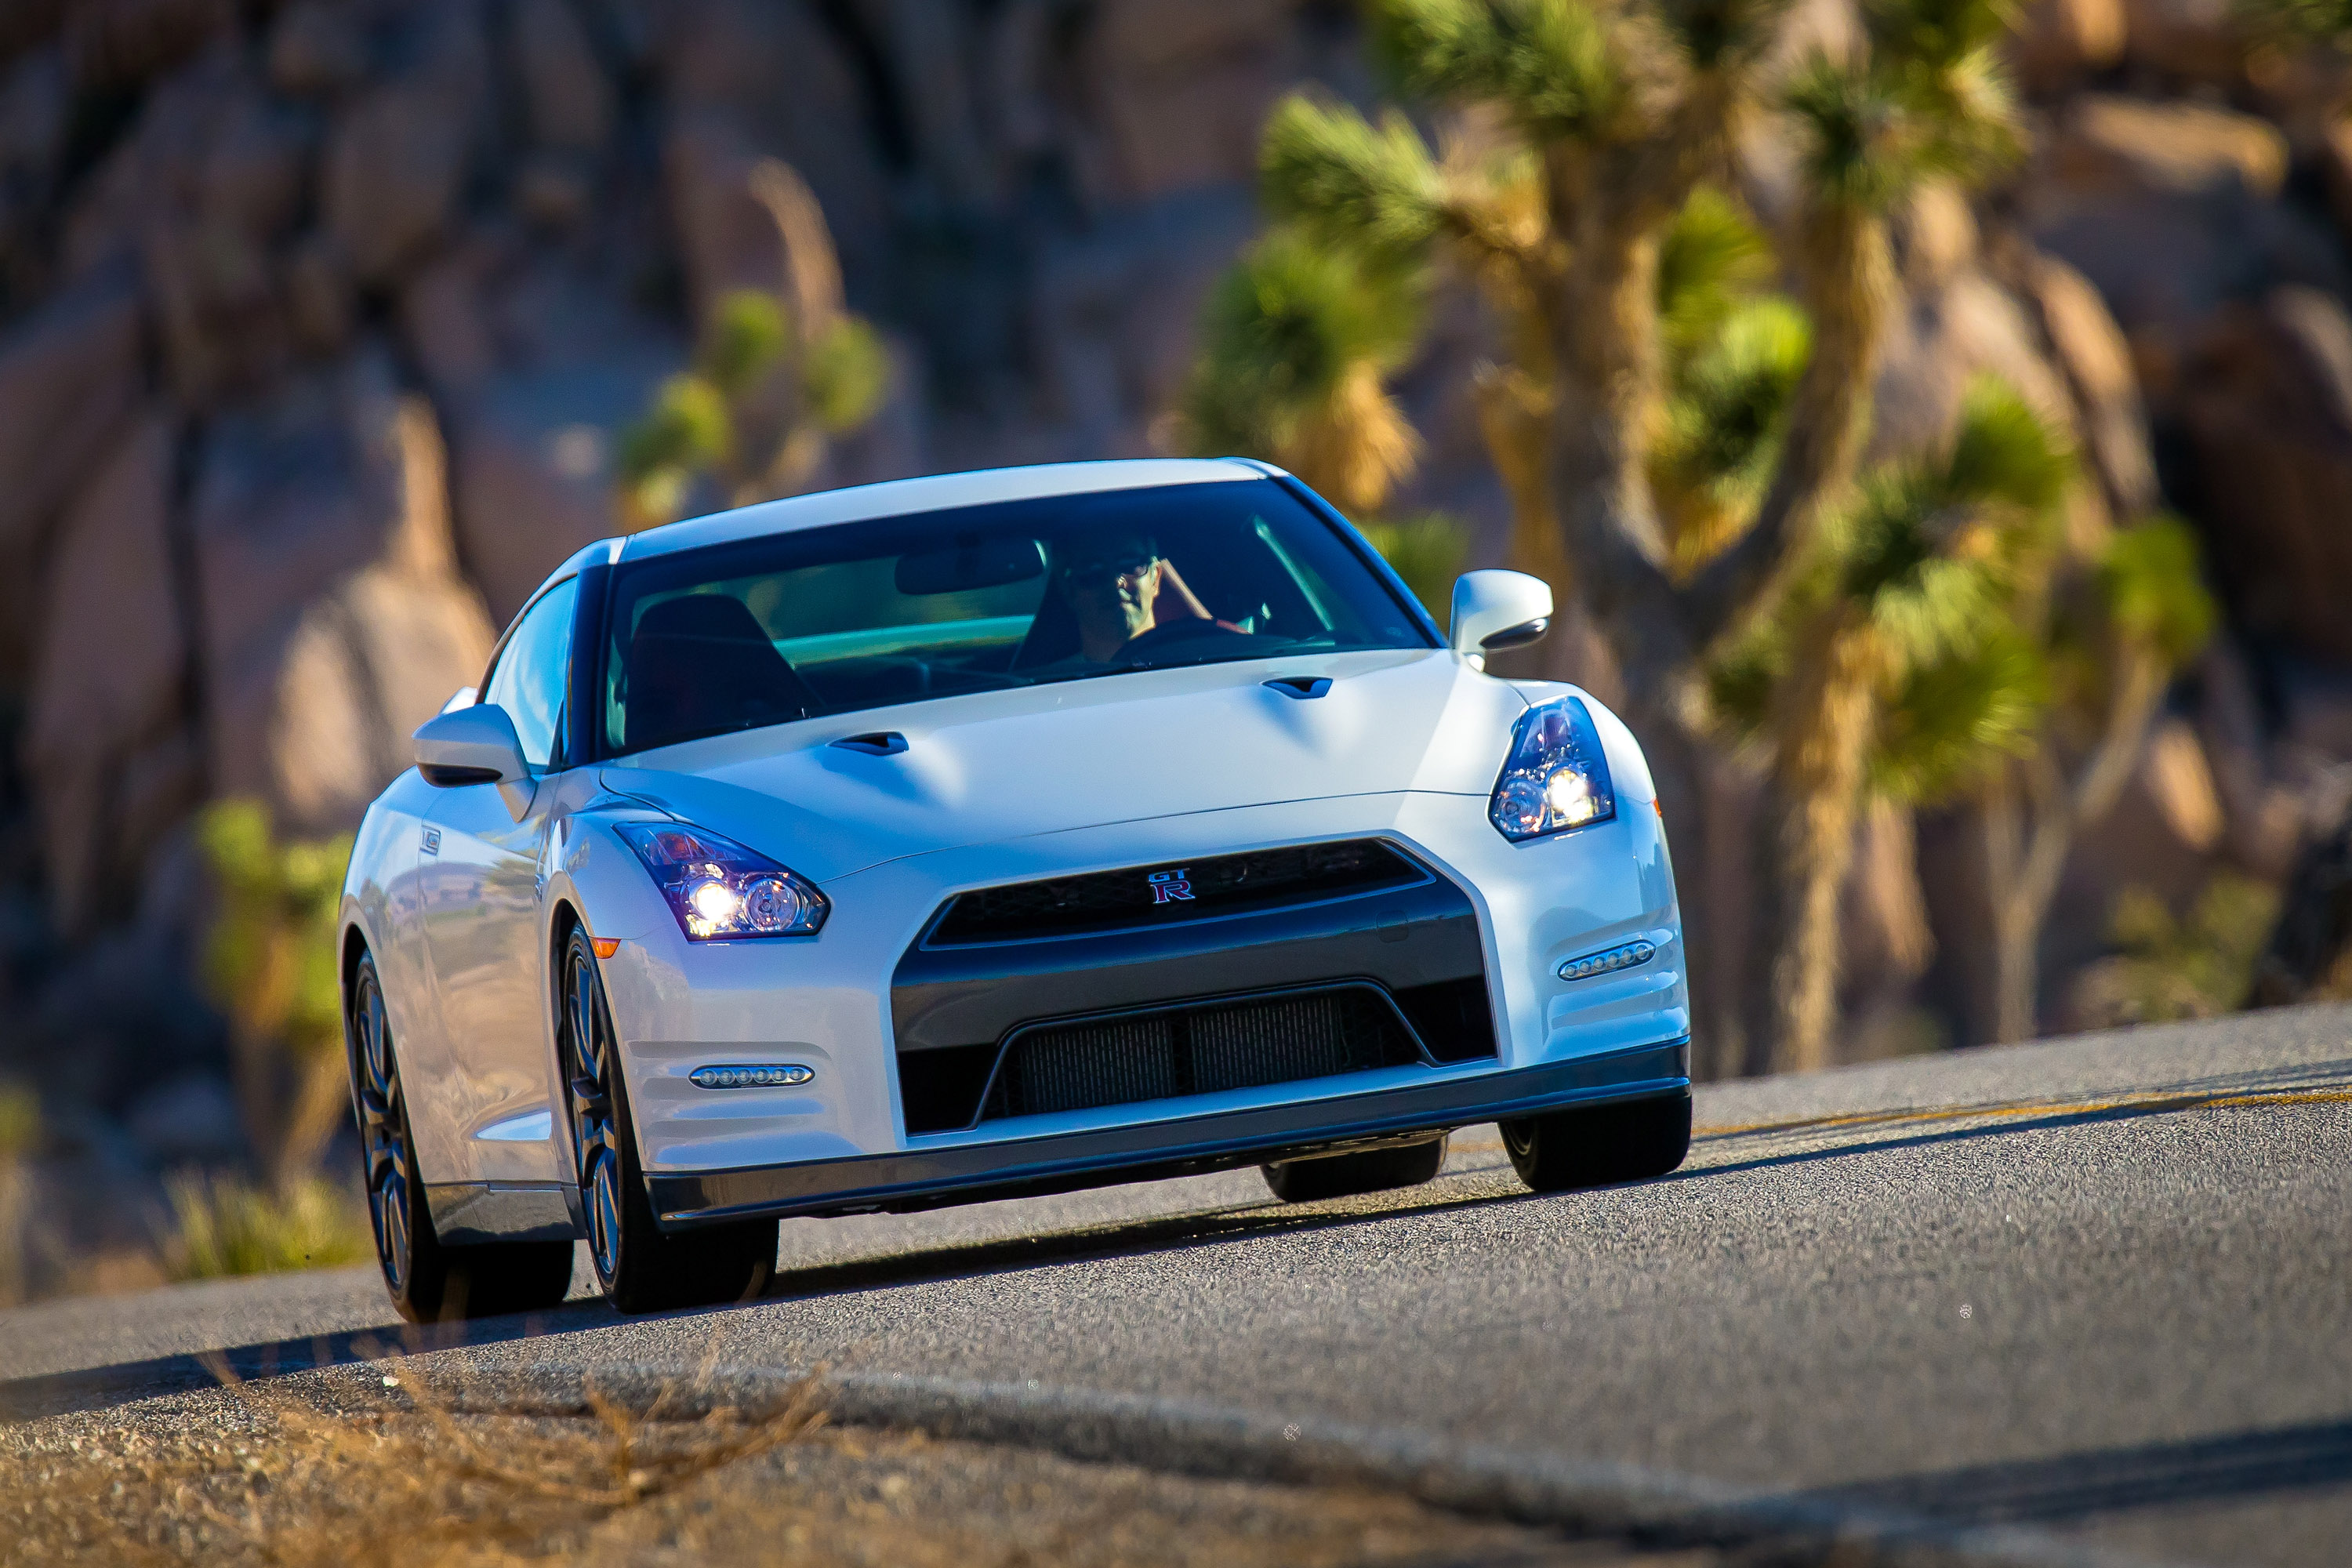 Nissan Sports Car >> 2014 Nissan GT-R - US Price $99,590